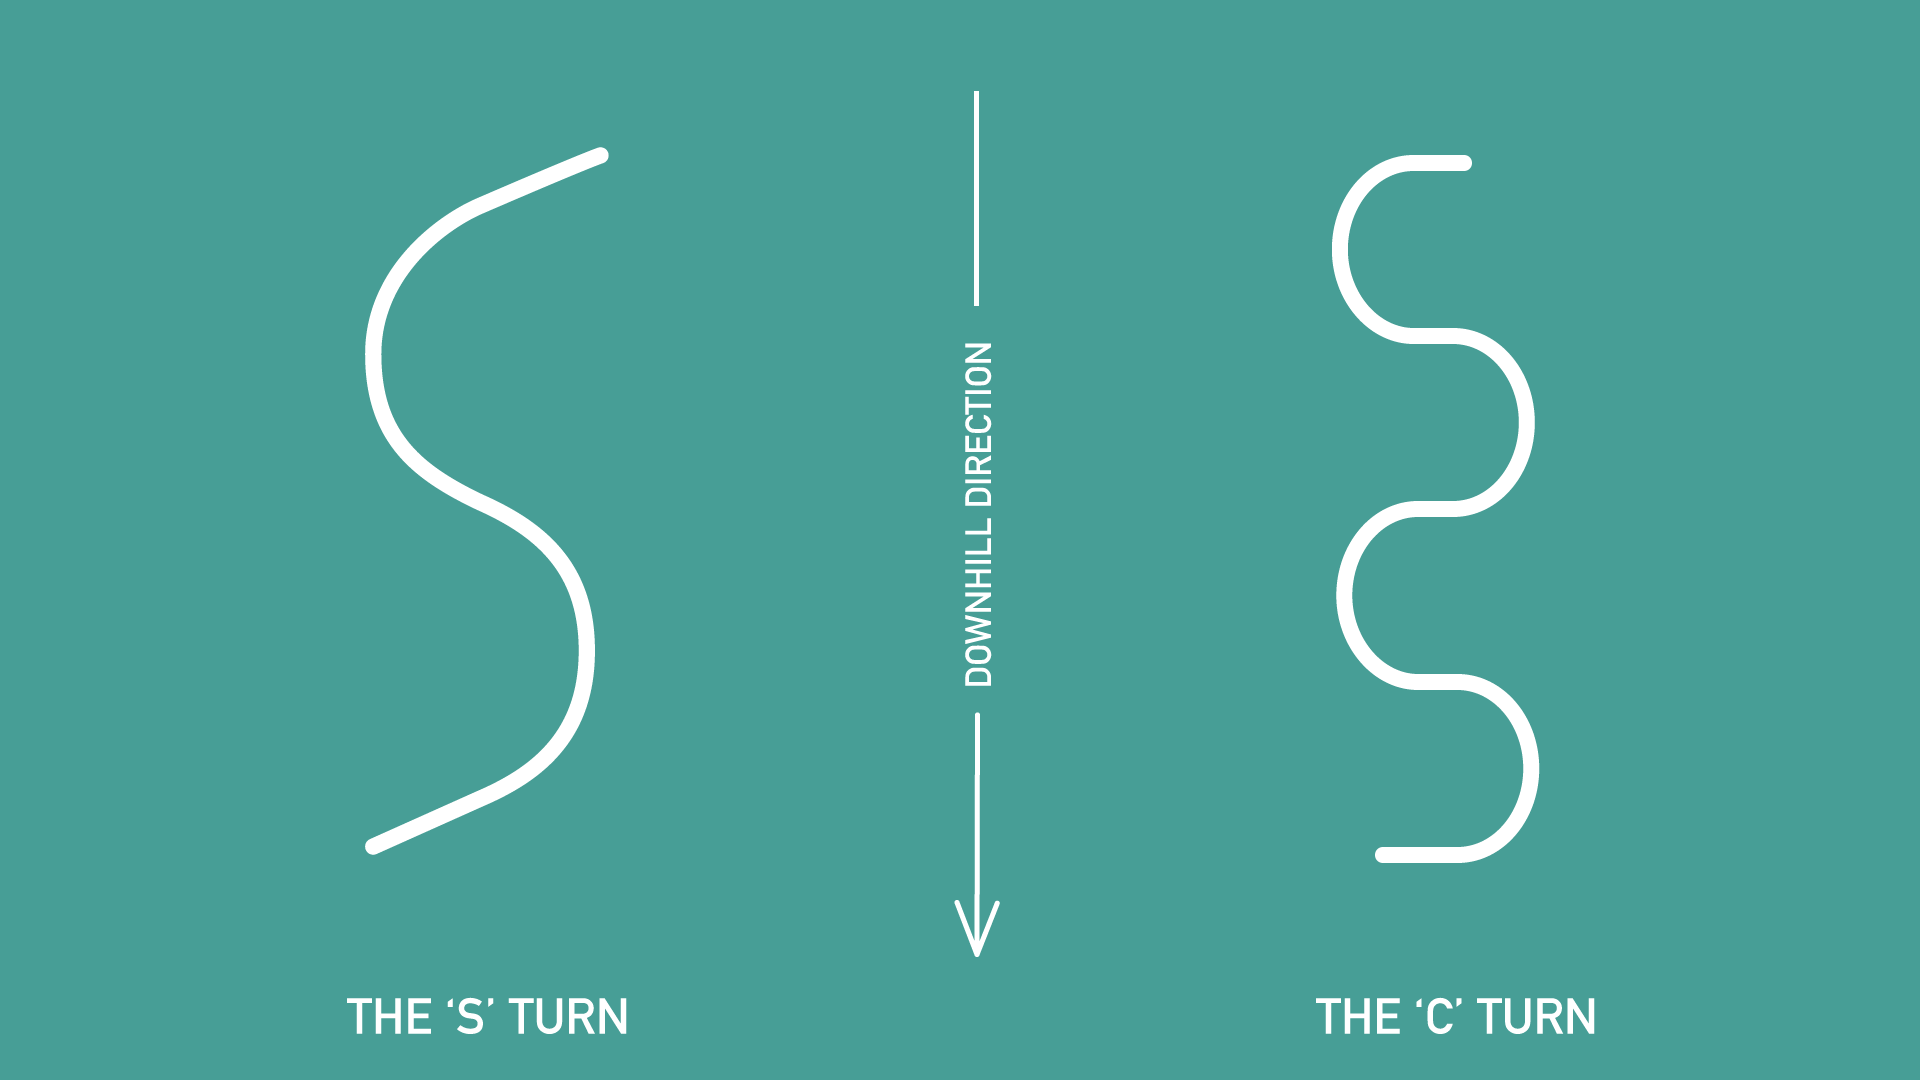 The two main turn shapes, the 'S' turn is great for mellower and wider terrain to maintain speed and the 'C' turn is great to maintain control on the steeper terrain